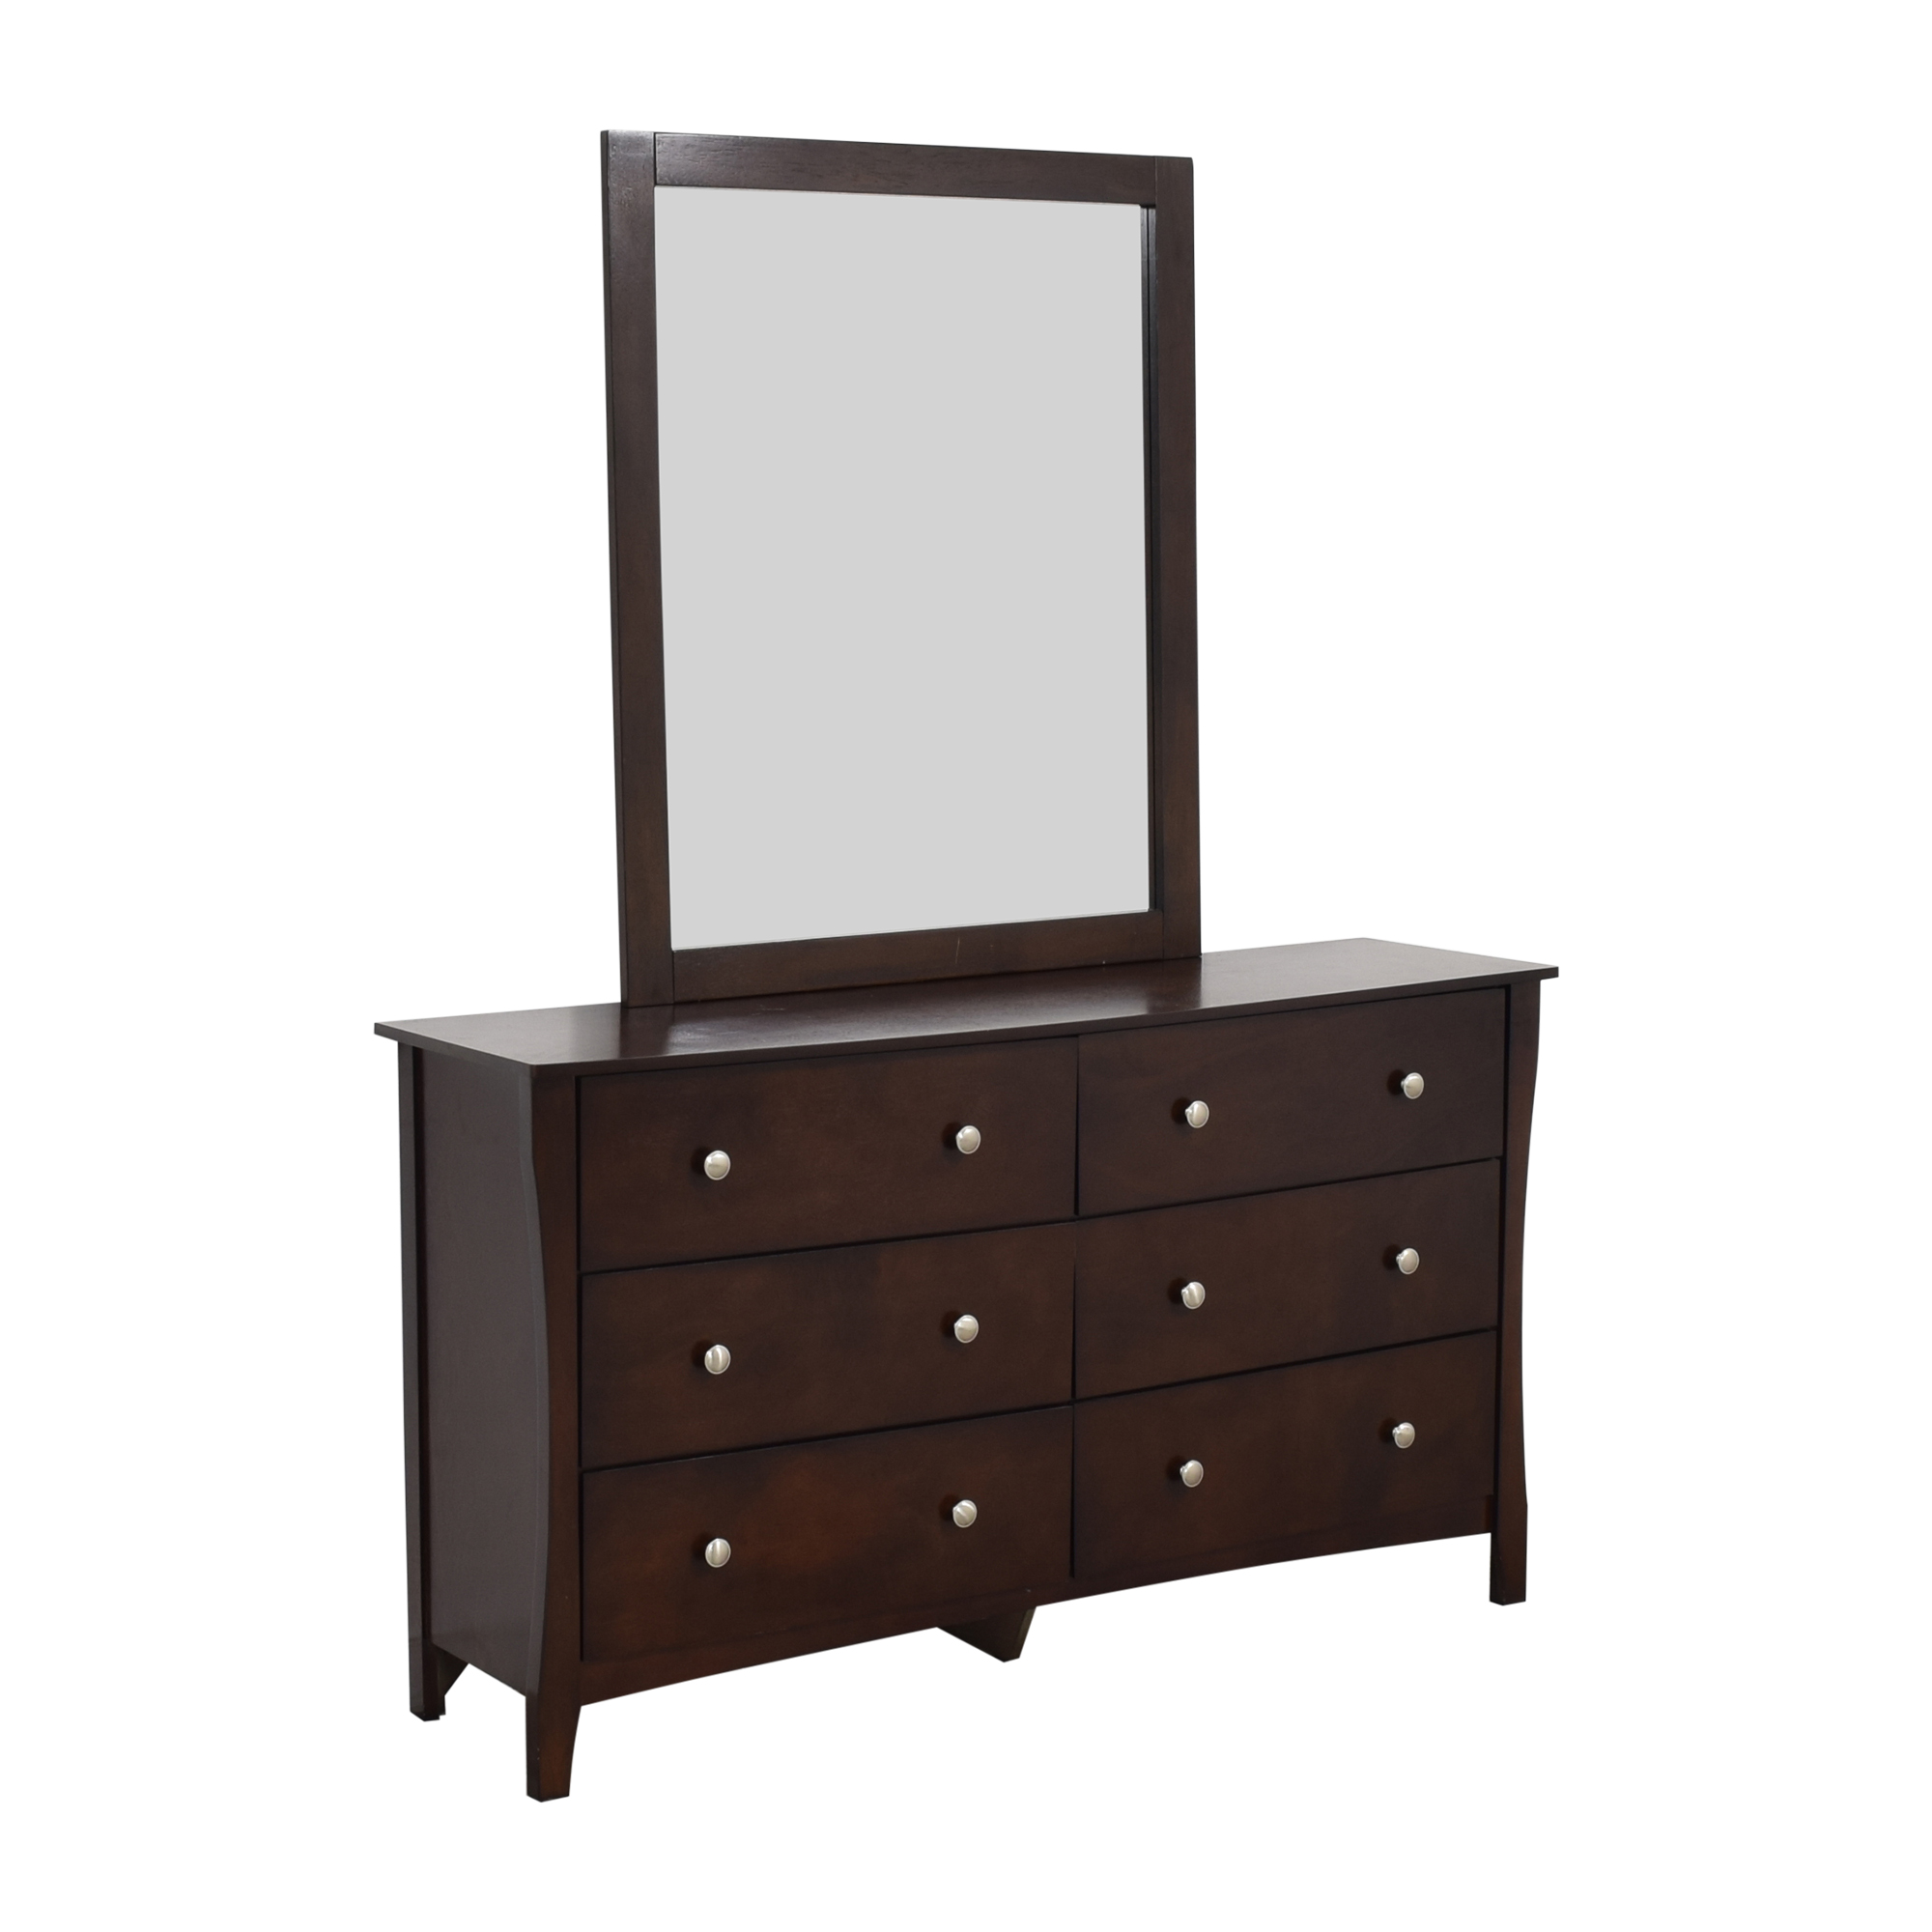 Ashley Furniture Ashley Furniture Rayville Dresser and Mirror ma